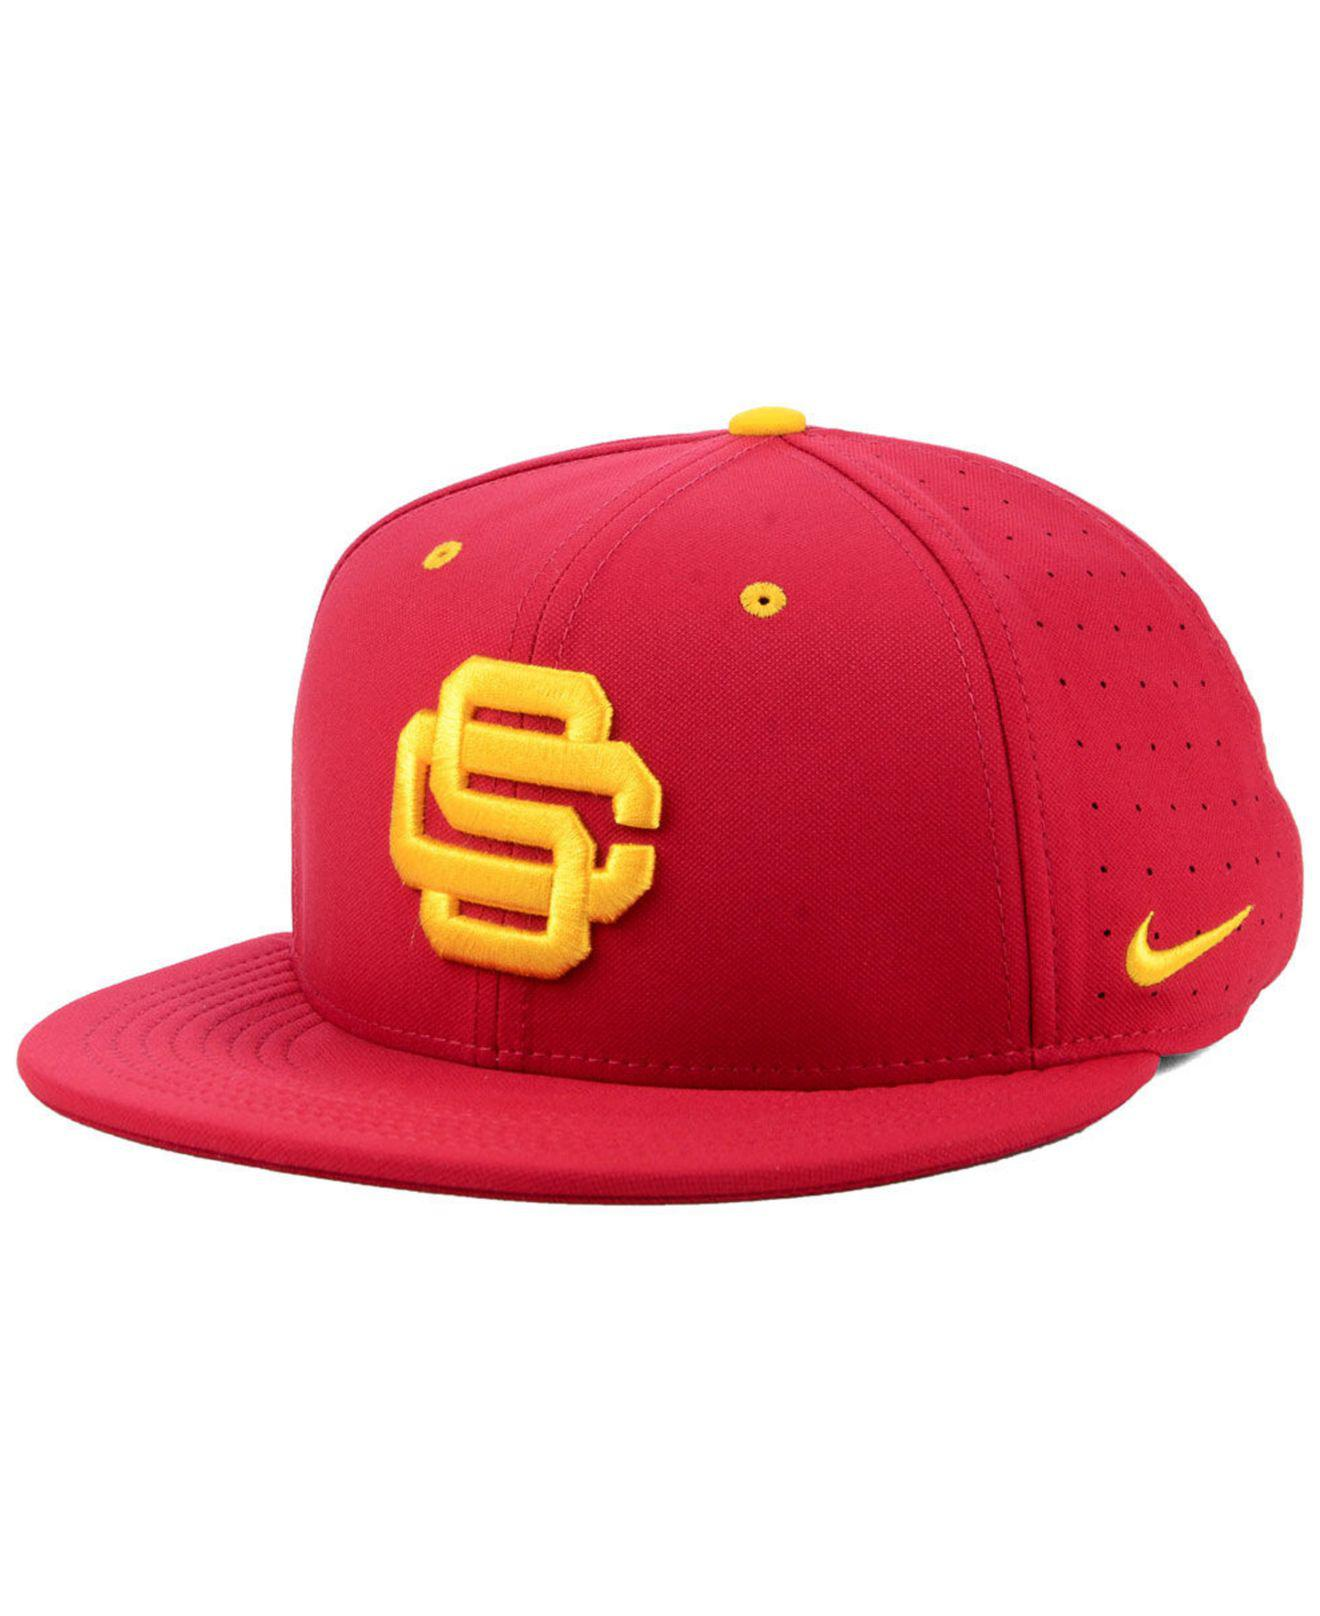 788363a26db27 ... sweden lyst nike usc trojans aerobill true fitted baseball cap in red  for men 58b1f f4120